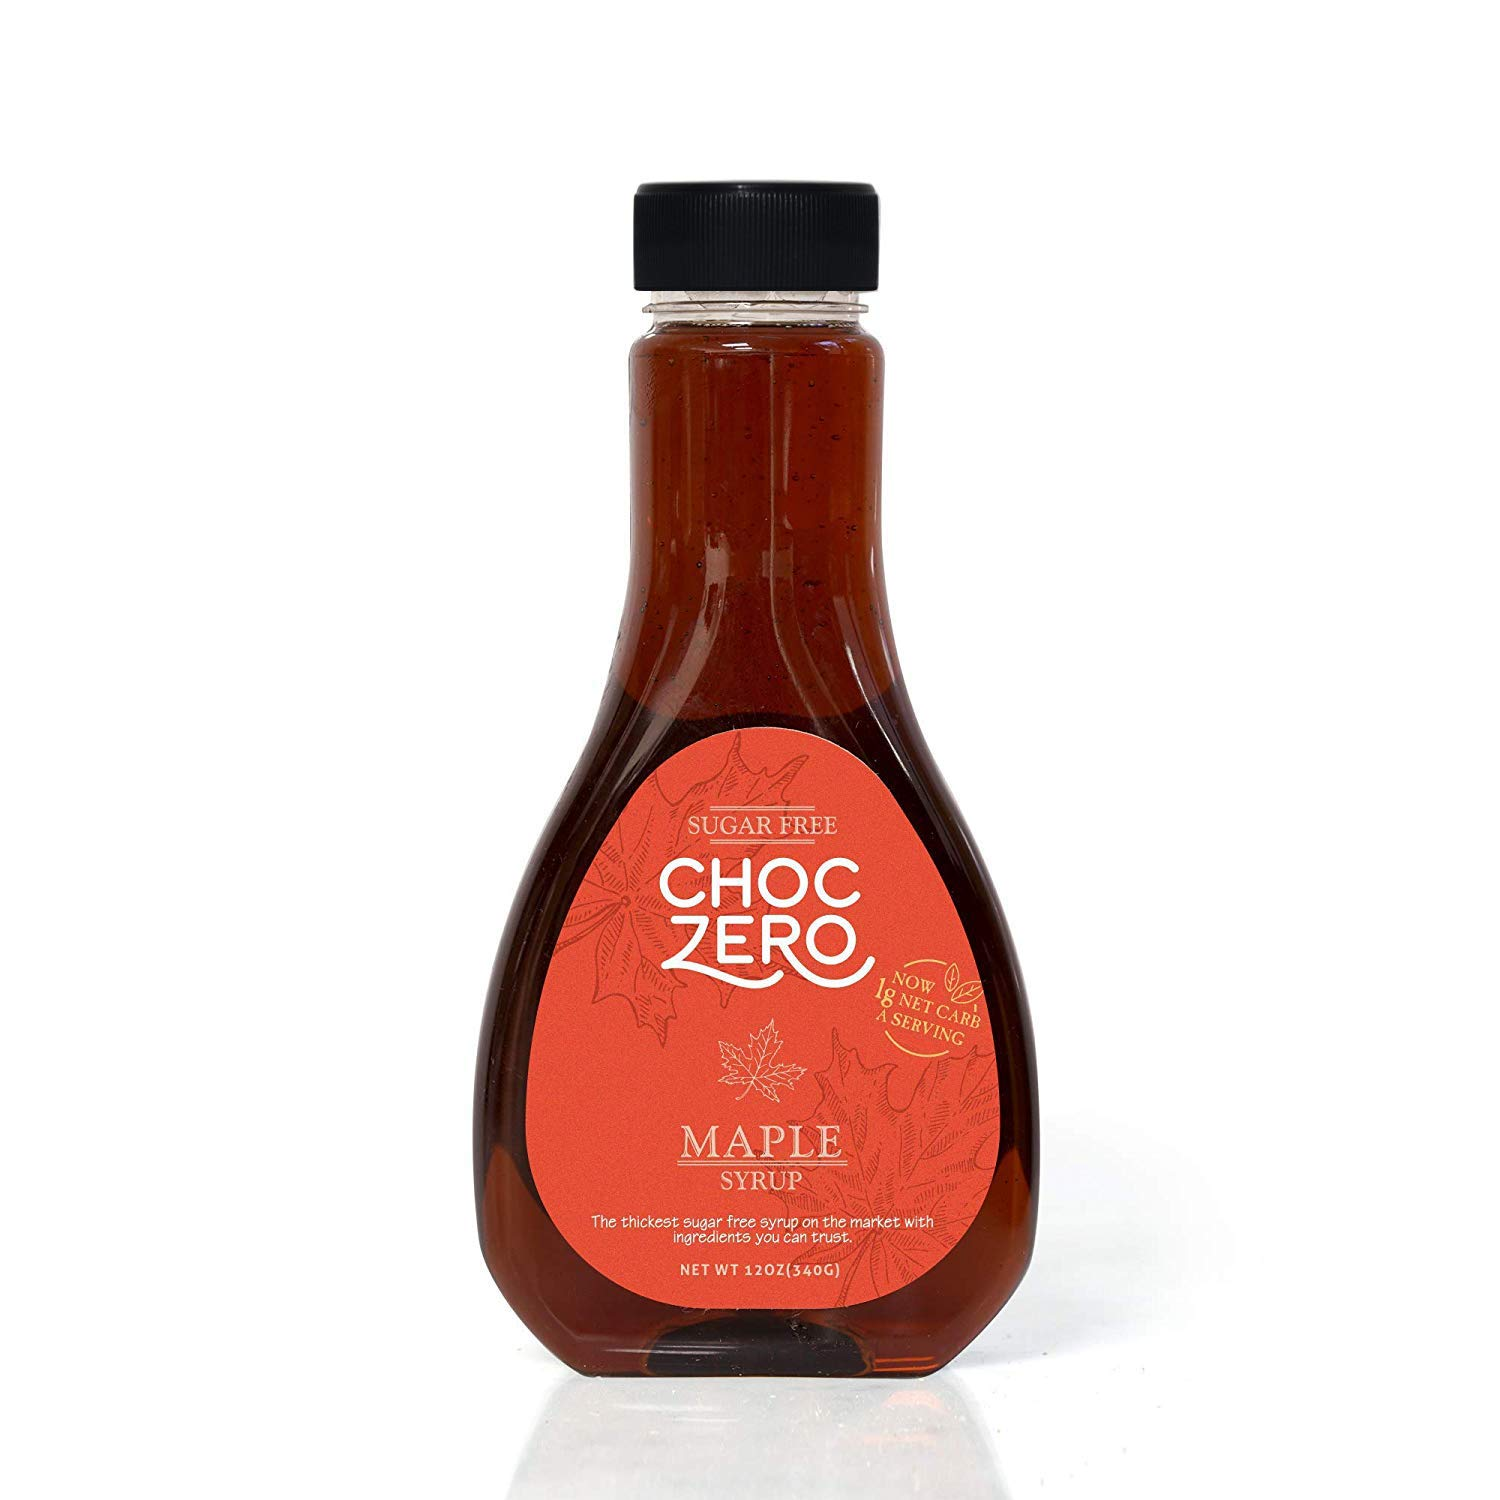 ChocZero Maple Syrup. Sugar Free, Low Carb, Sugar Alcohol Free, Gluten Free, No preservatives, Non-GMO. Dessert and Breakfast Topping Syrup. 1 Bottle(12oz)